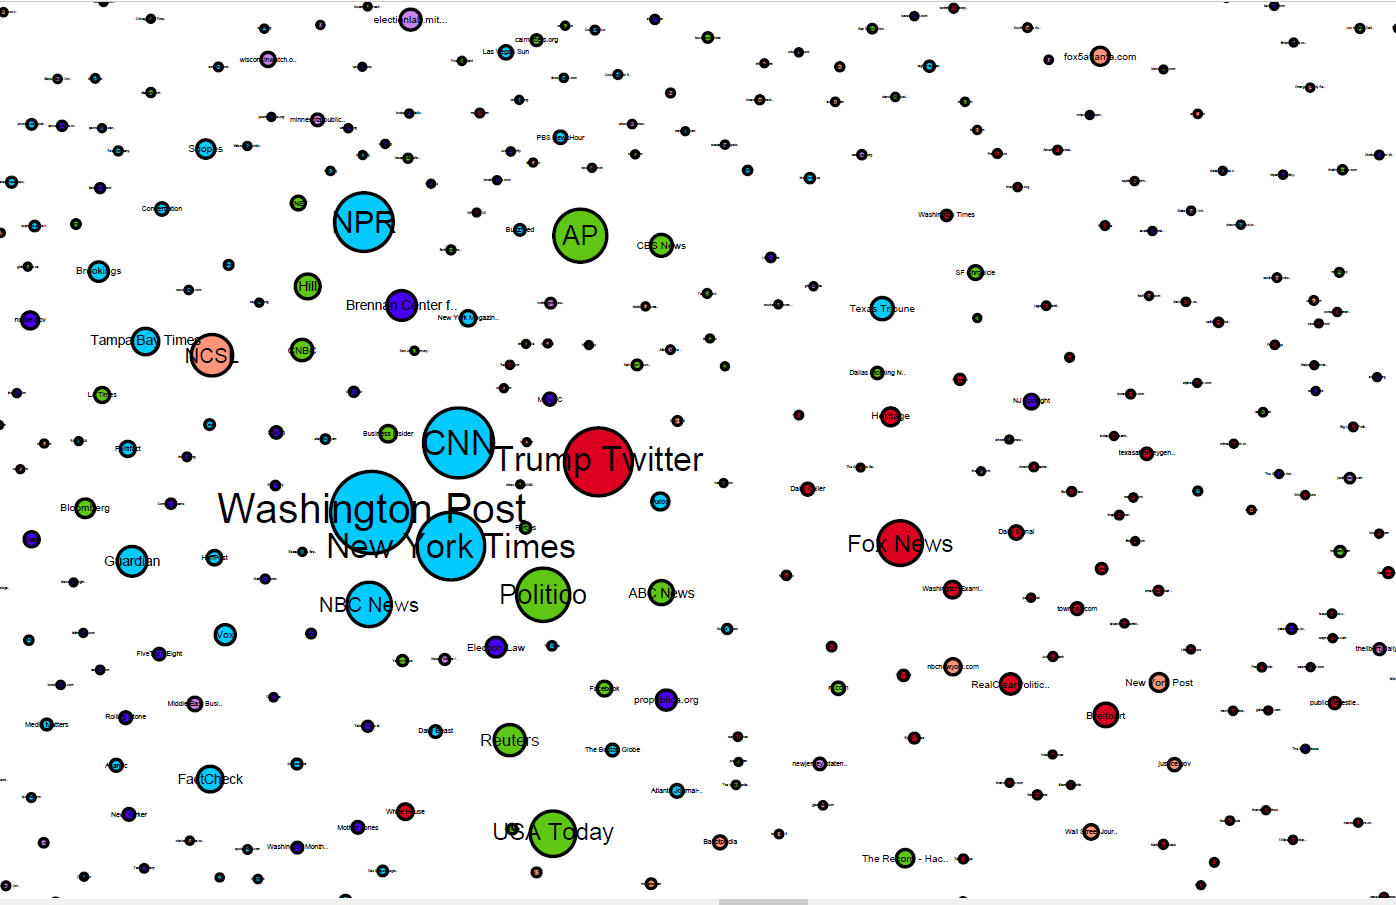 network map of discourse on mail in voting fraud